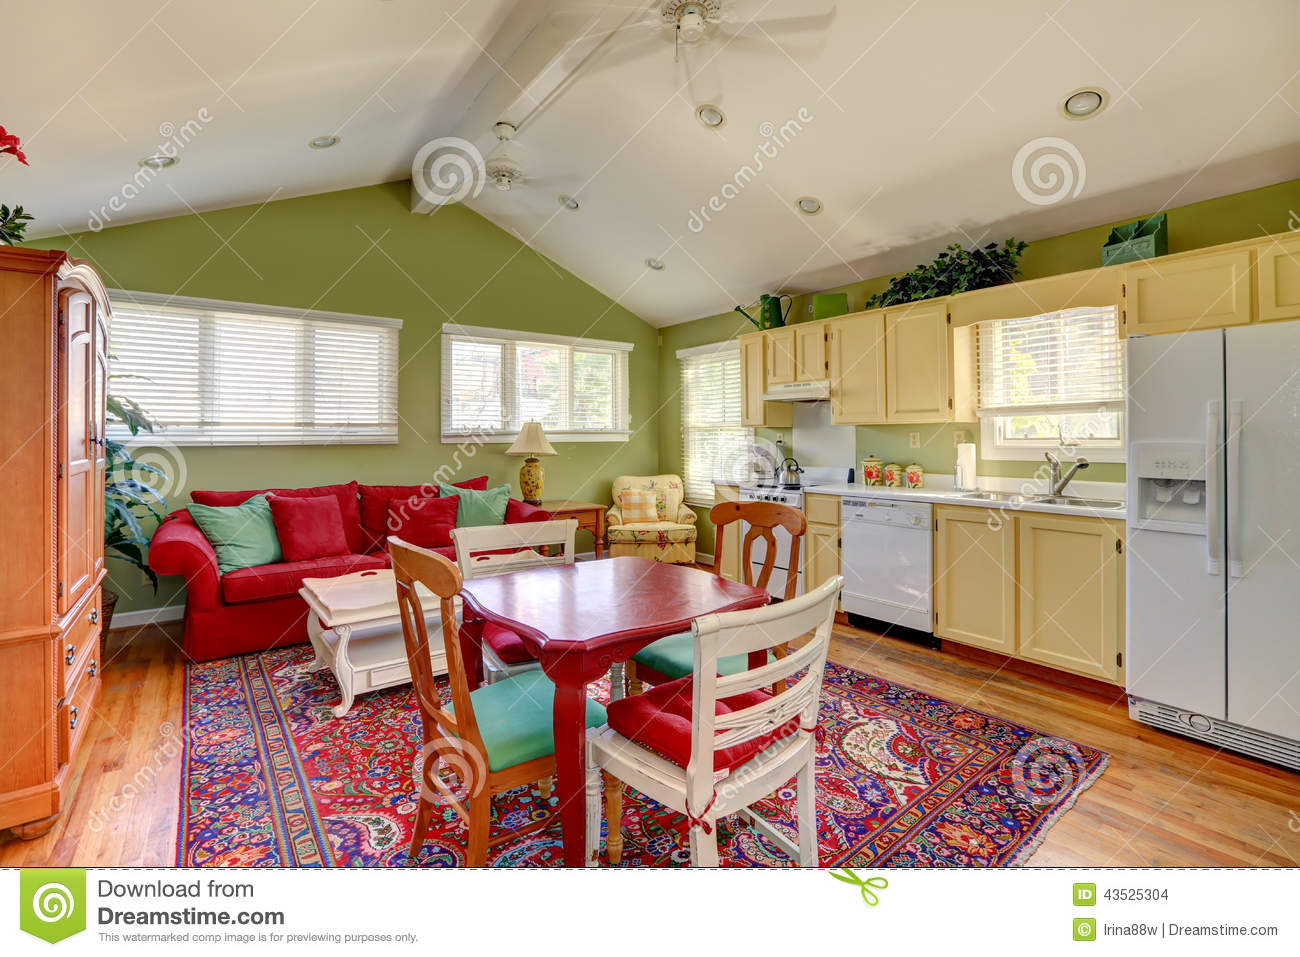 colorful house interior in old house stock photo image 43525304. Black Bedroom Furniture Sets. Home Design Ideas